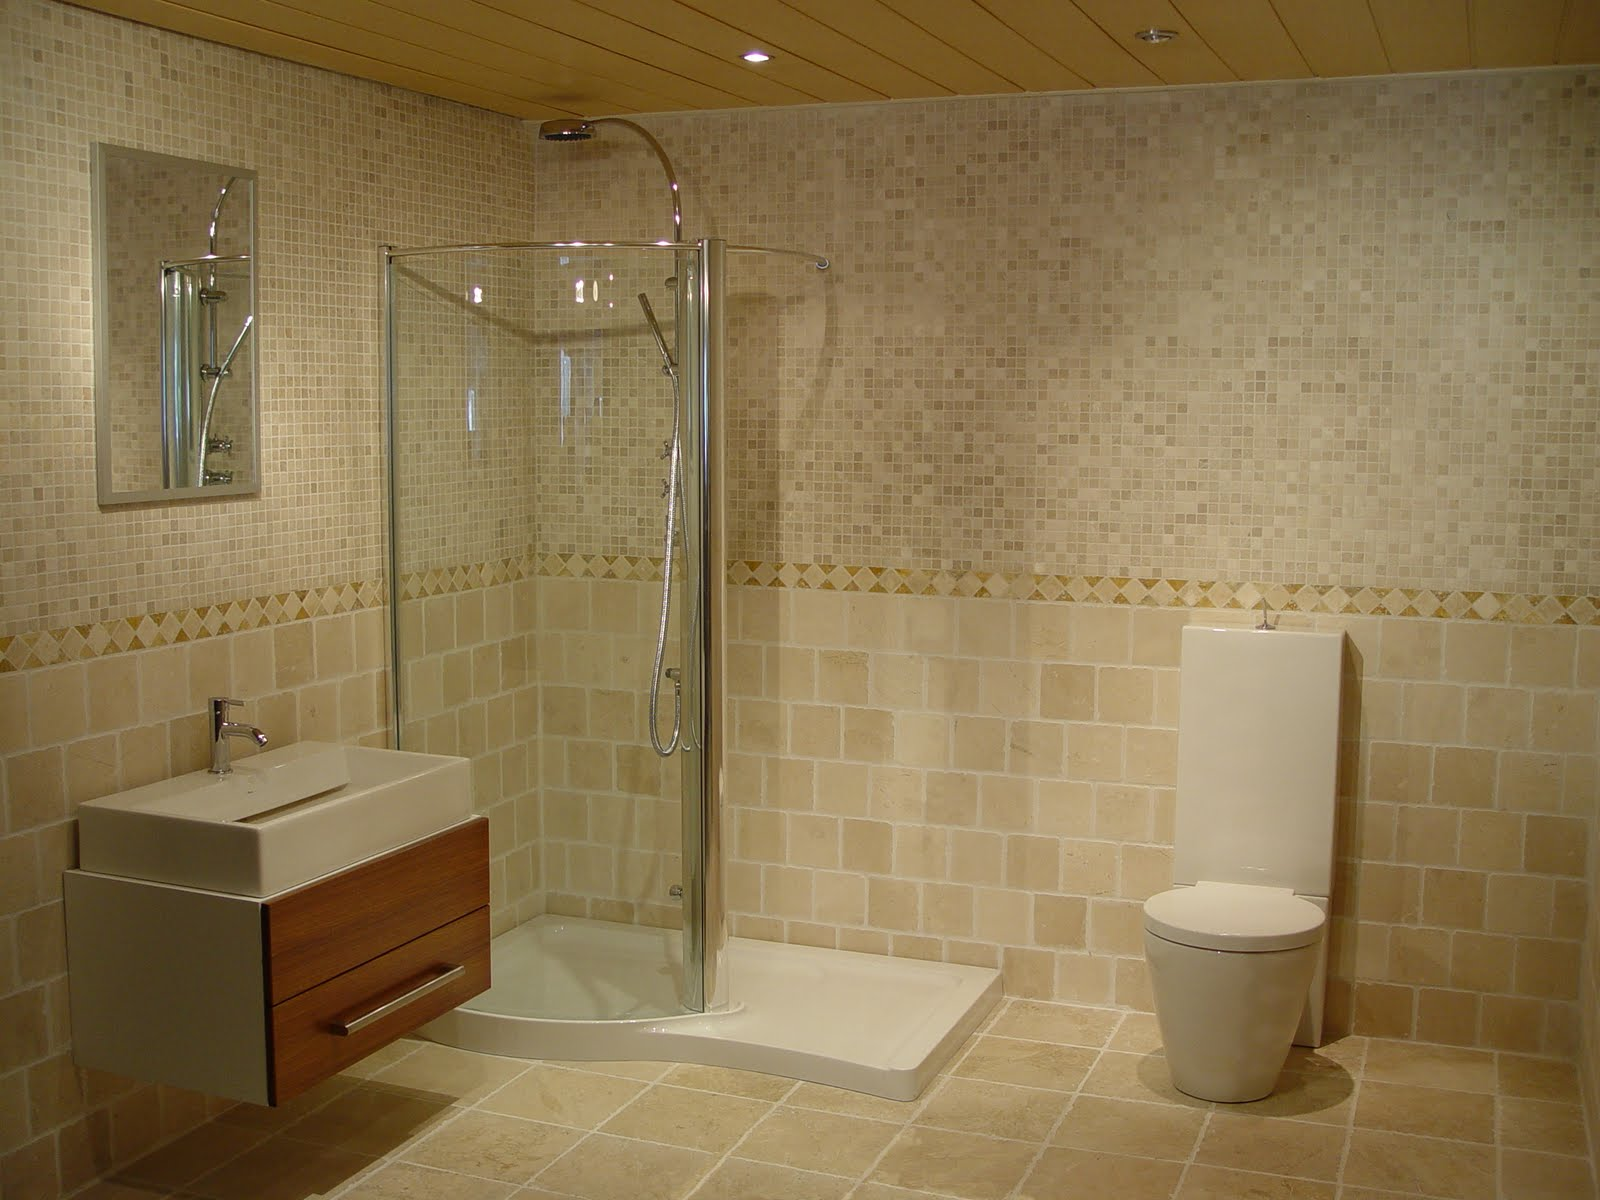 Bathroom Design Ideas: Tiles, Tiles, and Tiles - MidCityEast